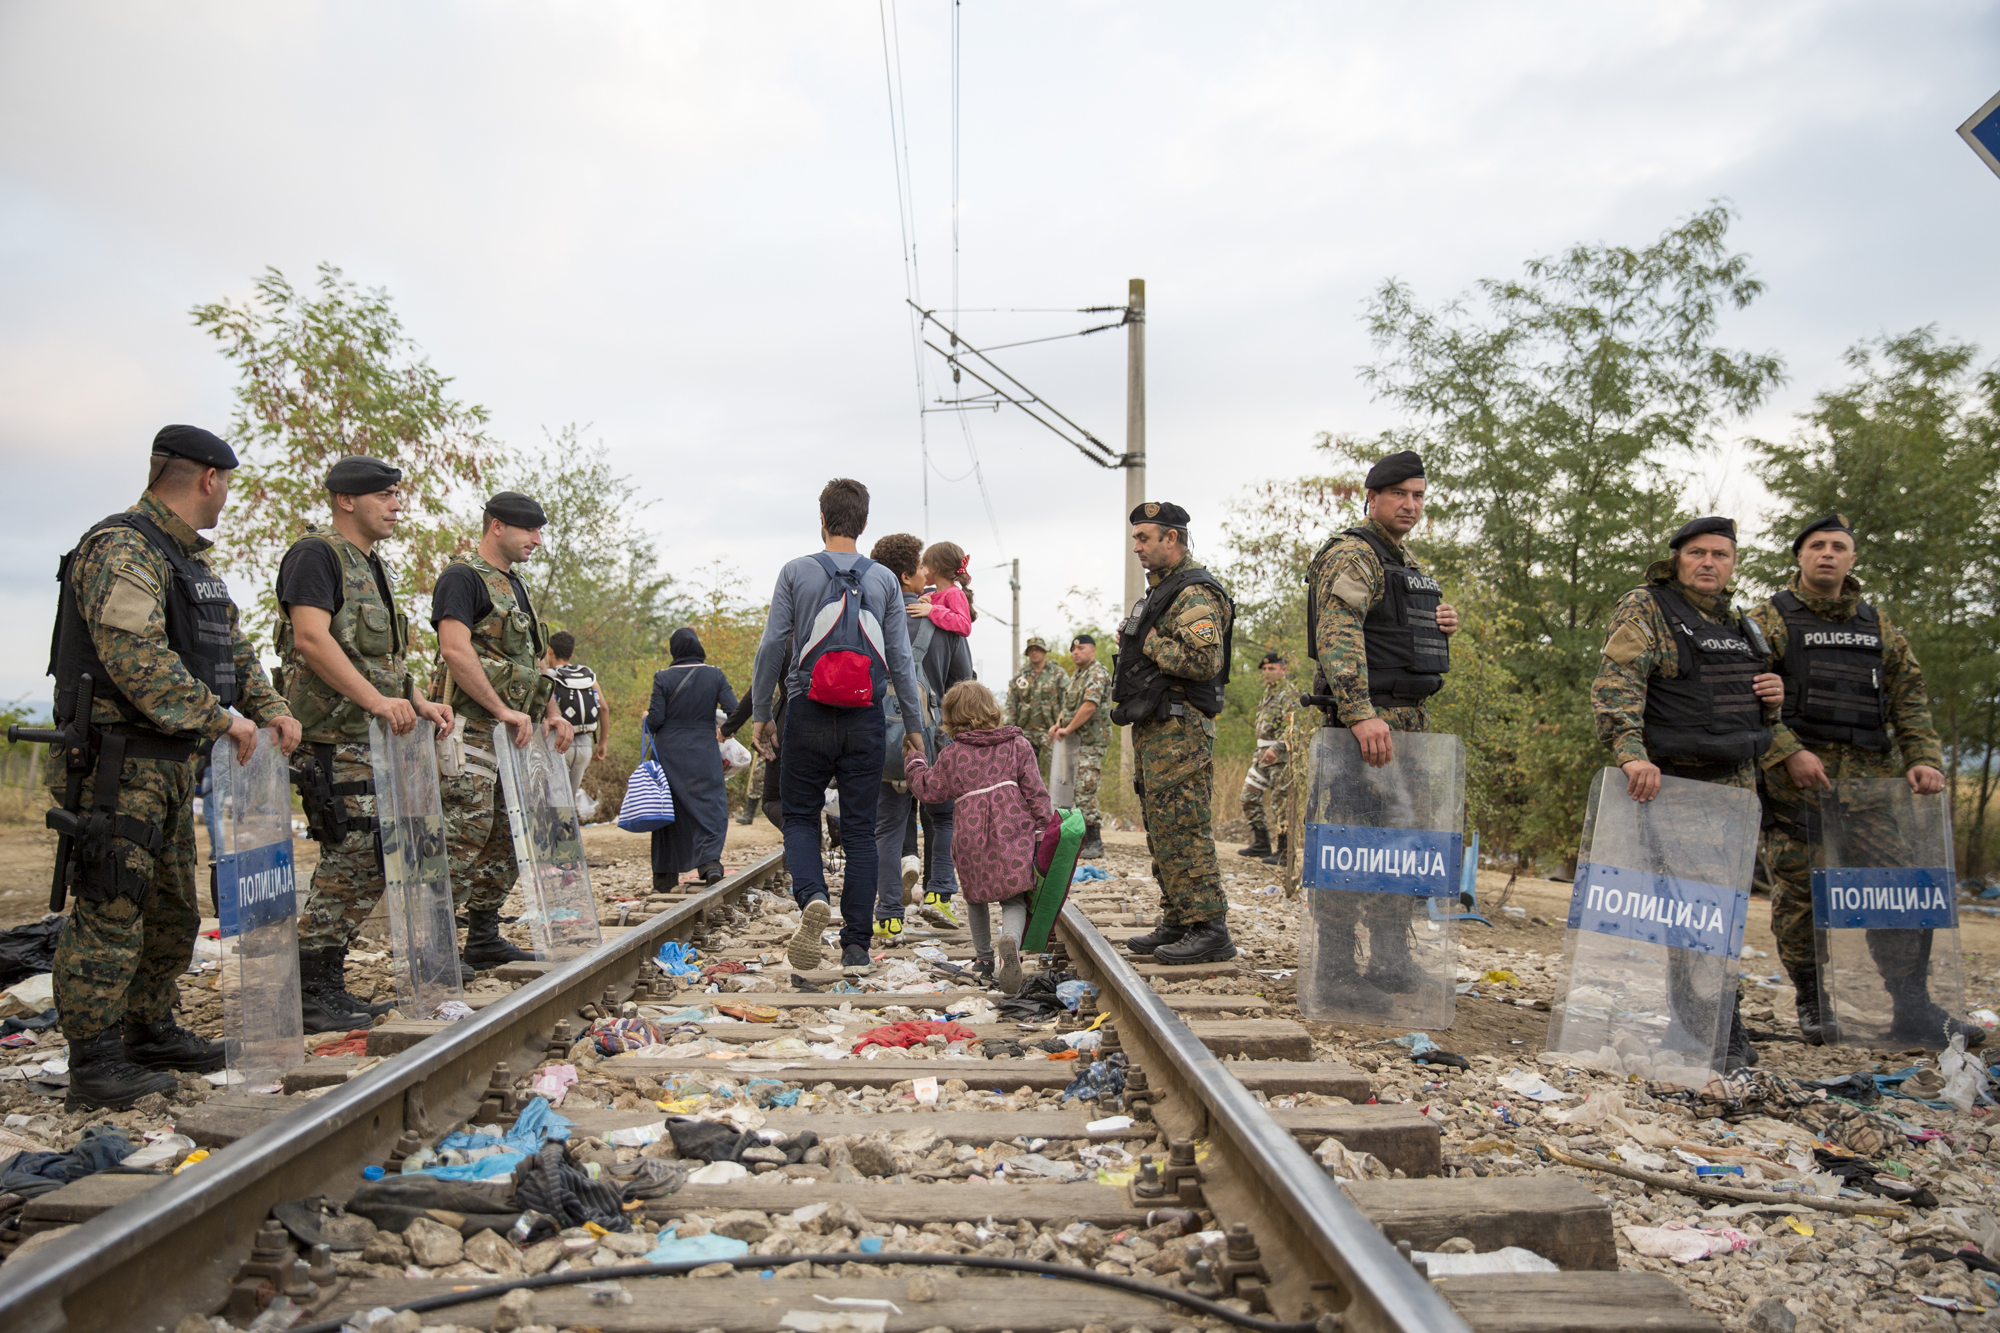 Refugees and migrants - Greece/Macedonia